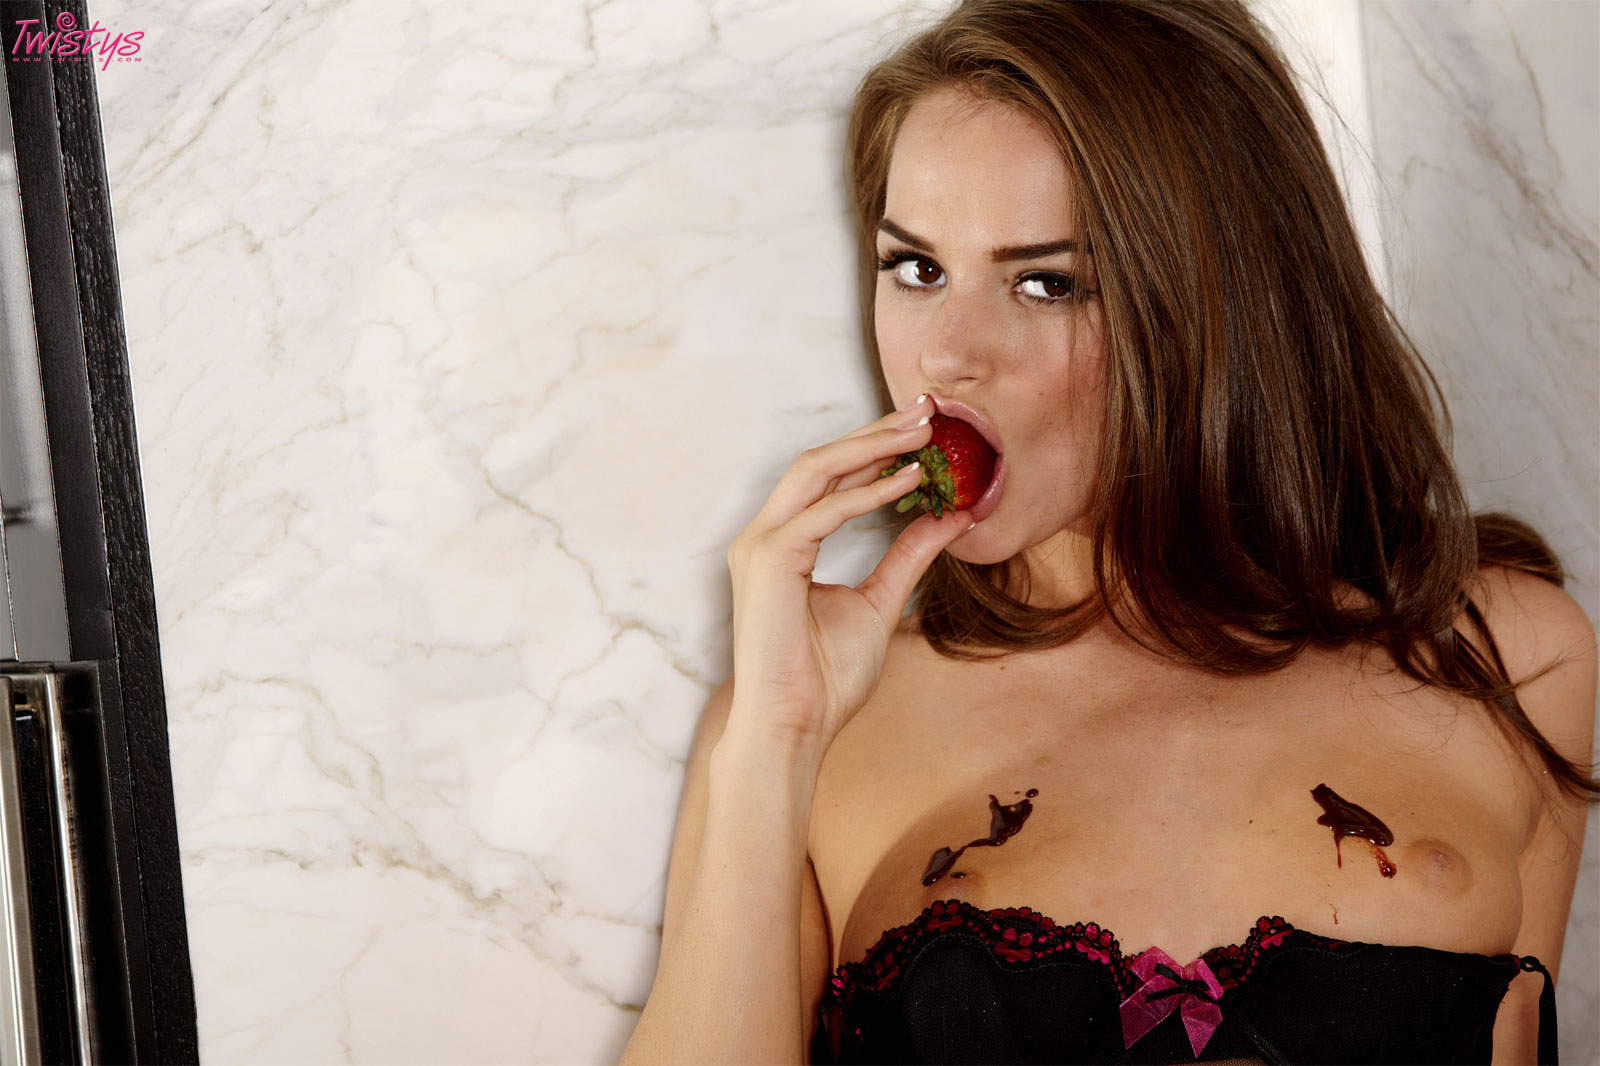 tori black with strawberries, chocolate syrup and her wet pussy